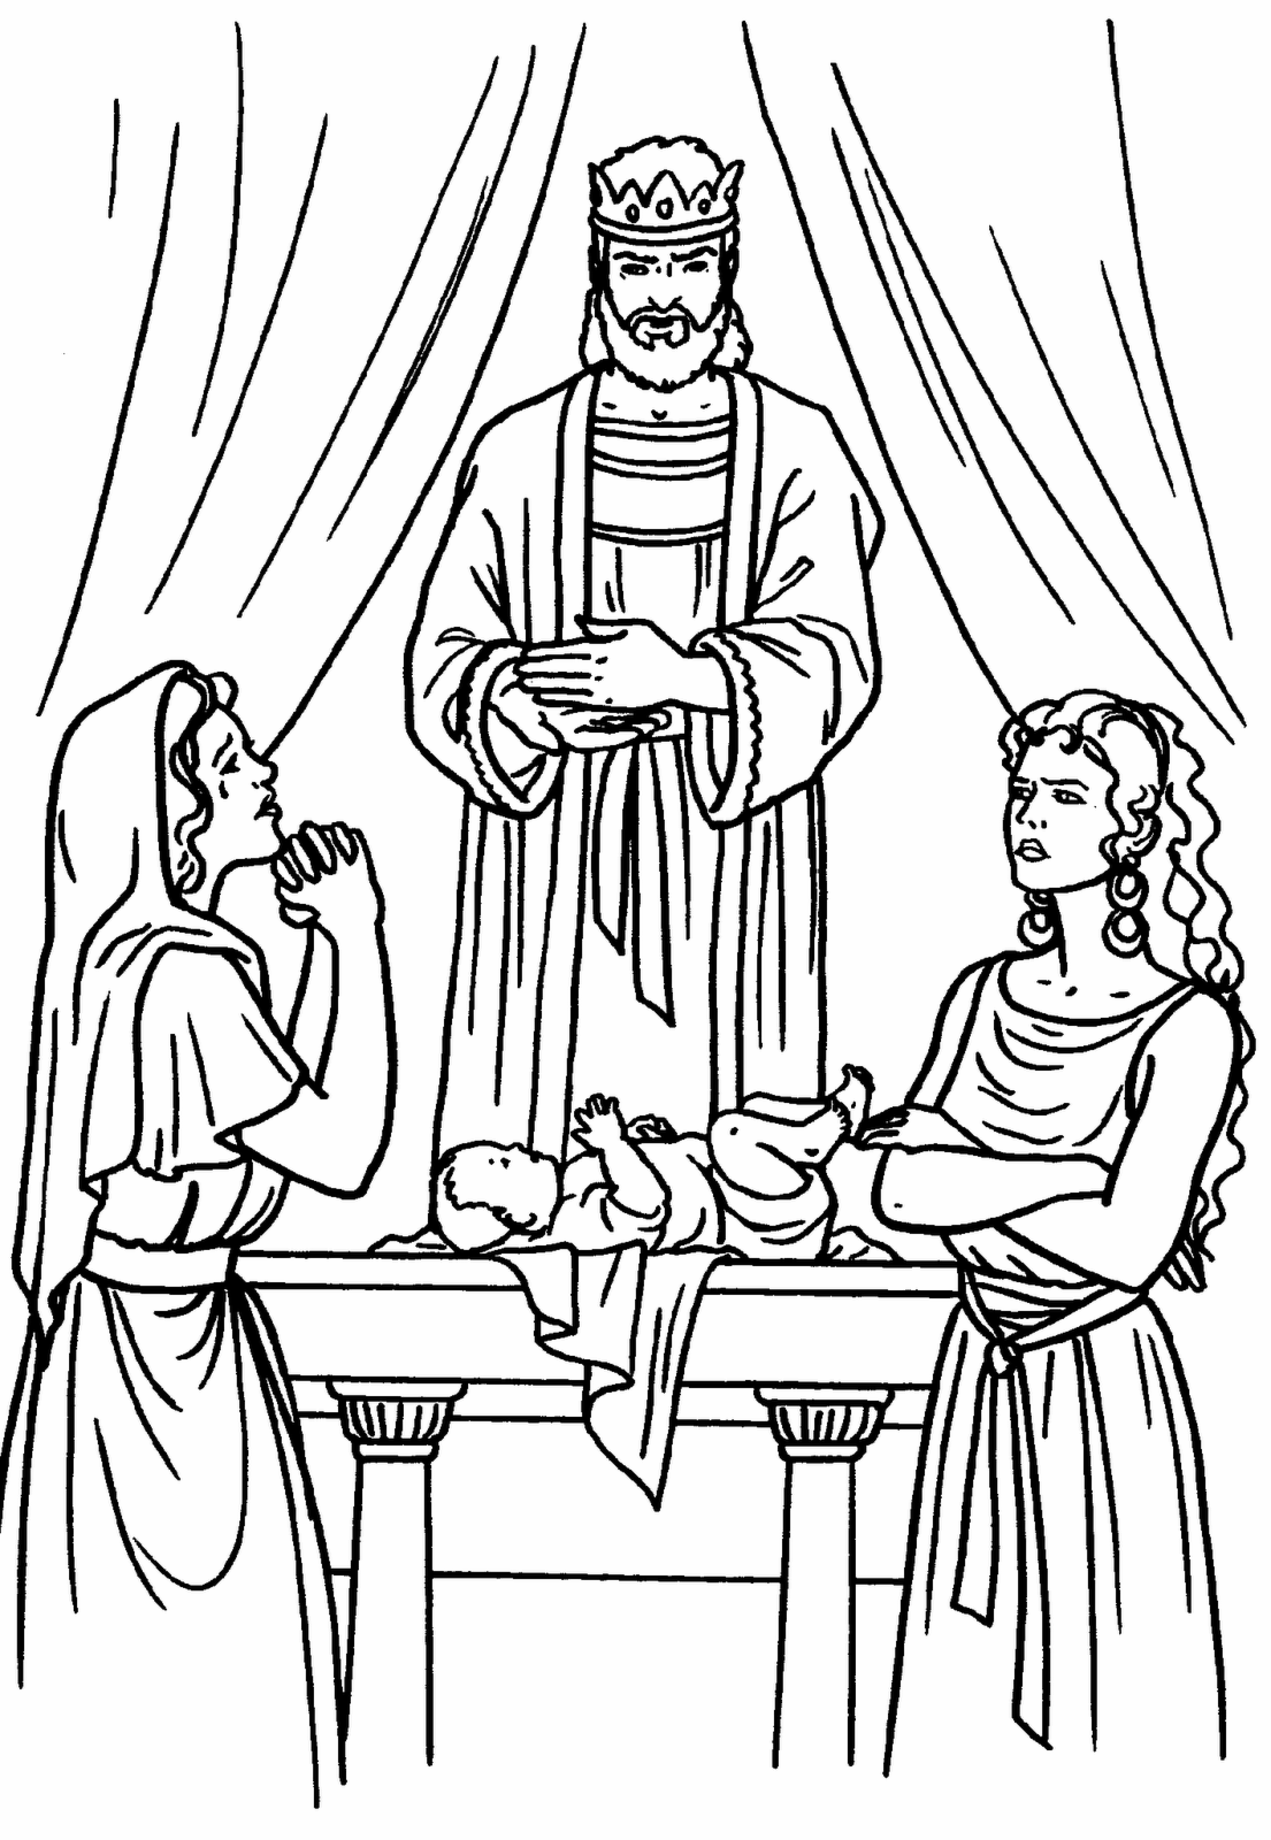 Printable coloring pages of queen esther - Printable Bible Coloring Pages For Kids Http Fullcoloring Com Printable